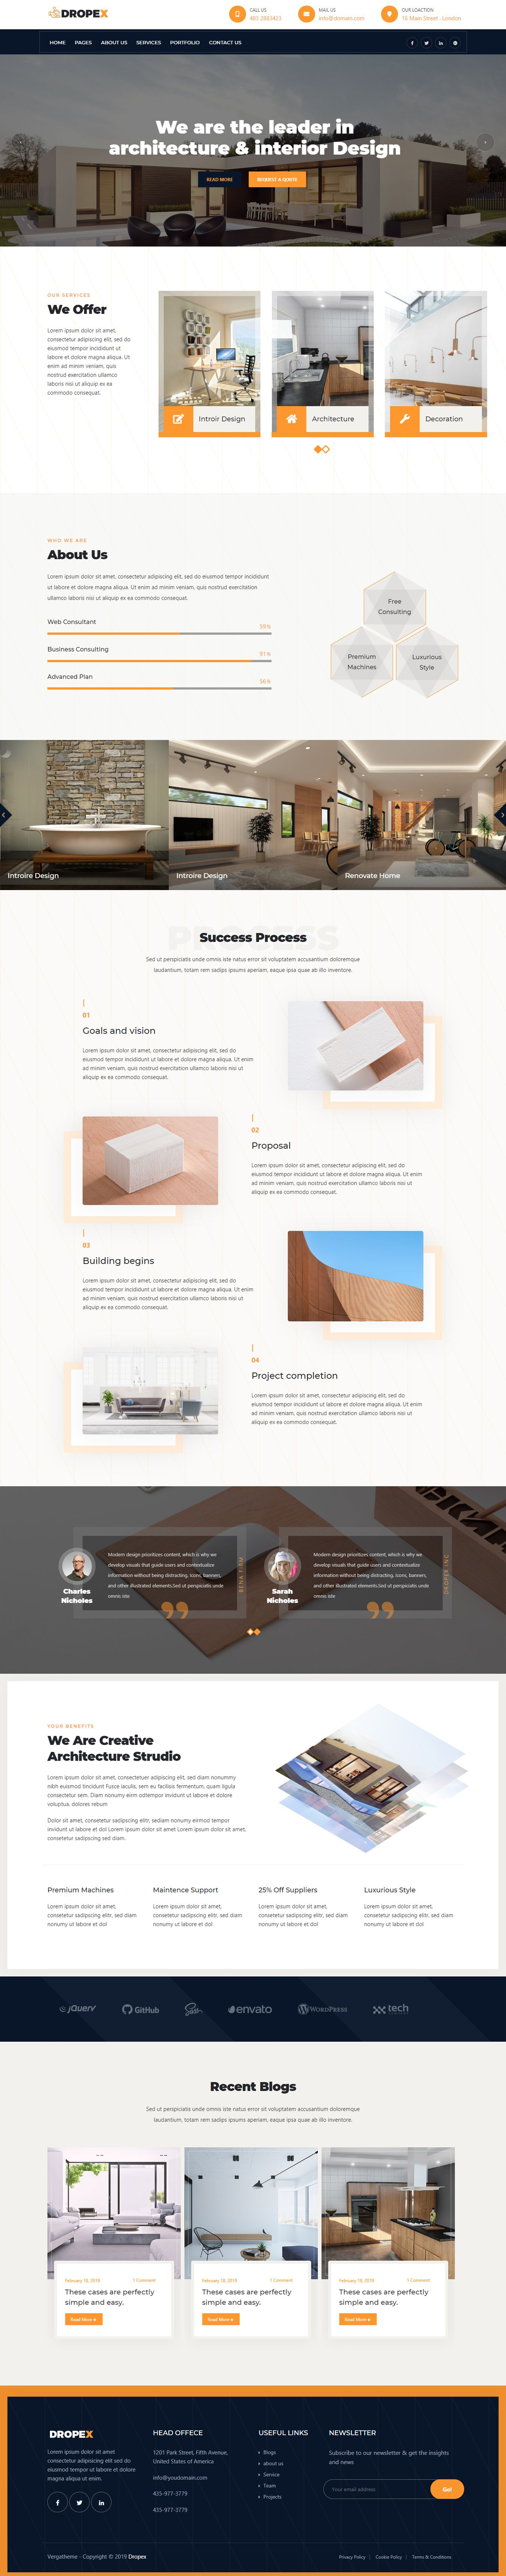 Business Construction & Architecture WordPress Theme